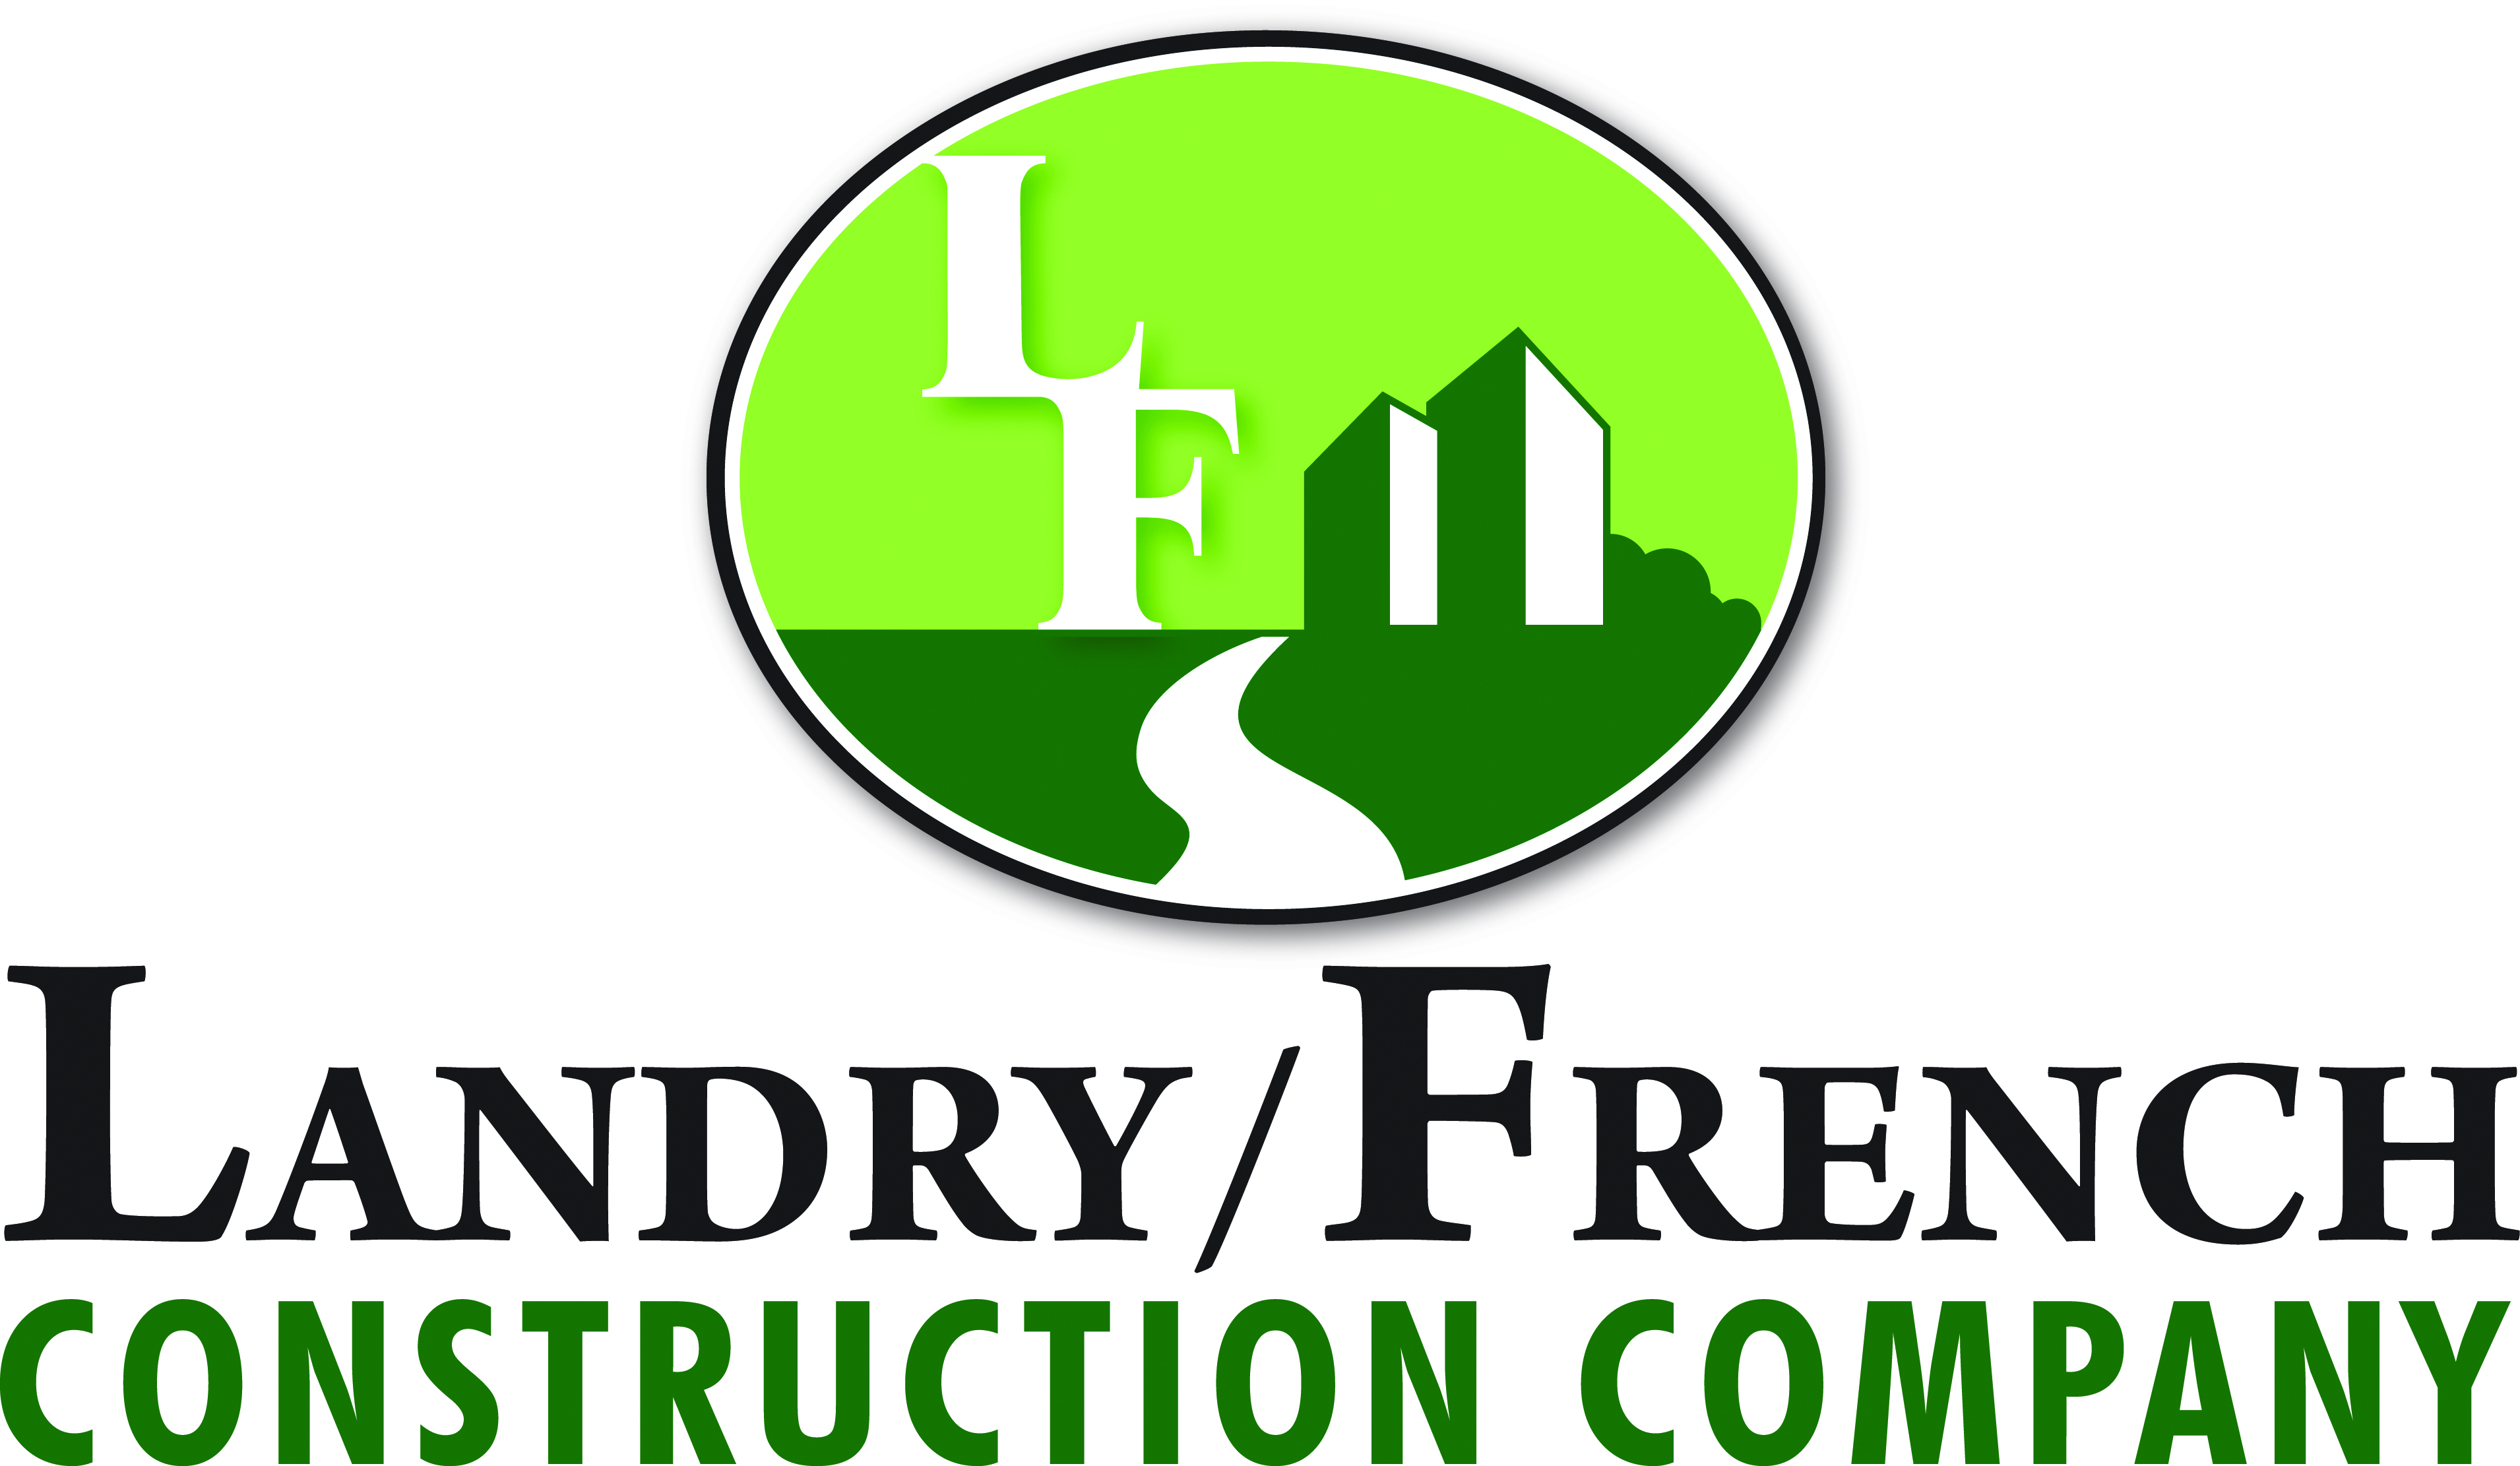 Landry/French Construction Company